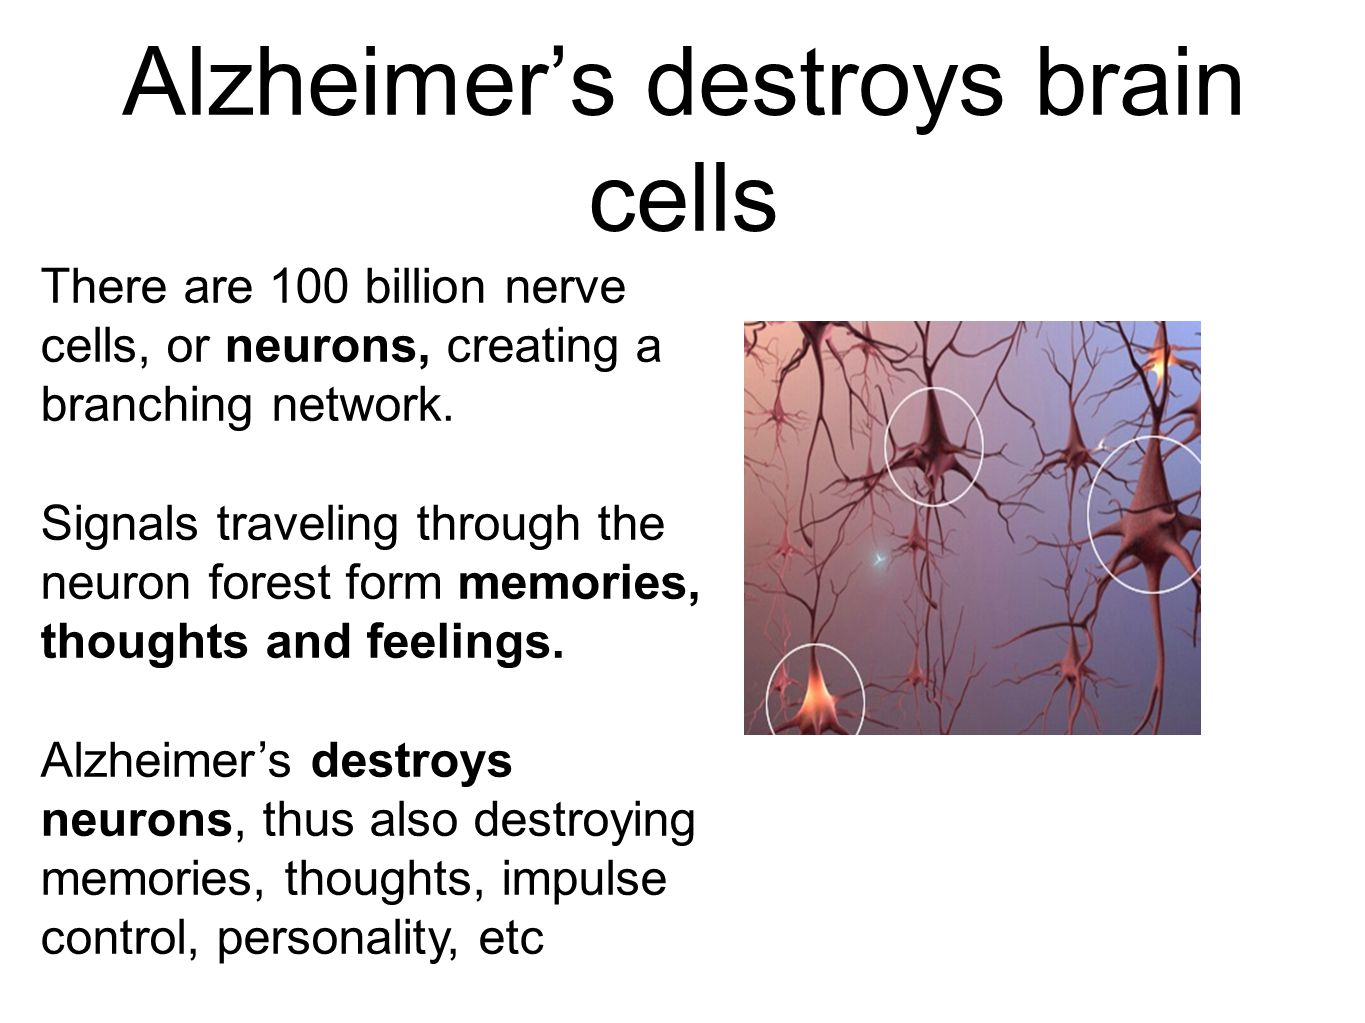 Alzheimer's destroys brain cells There are 100 billion nerve cells, or neurons, creating a branching network.